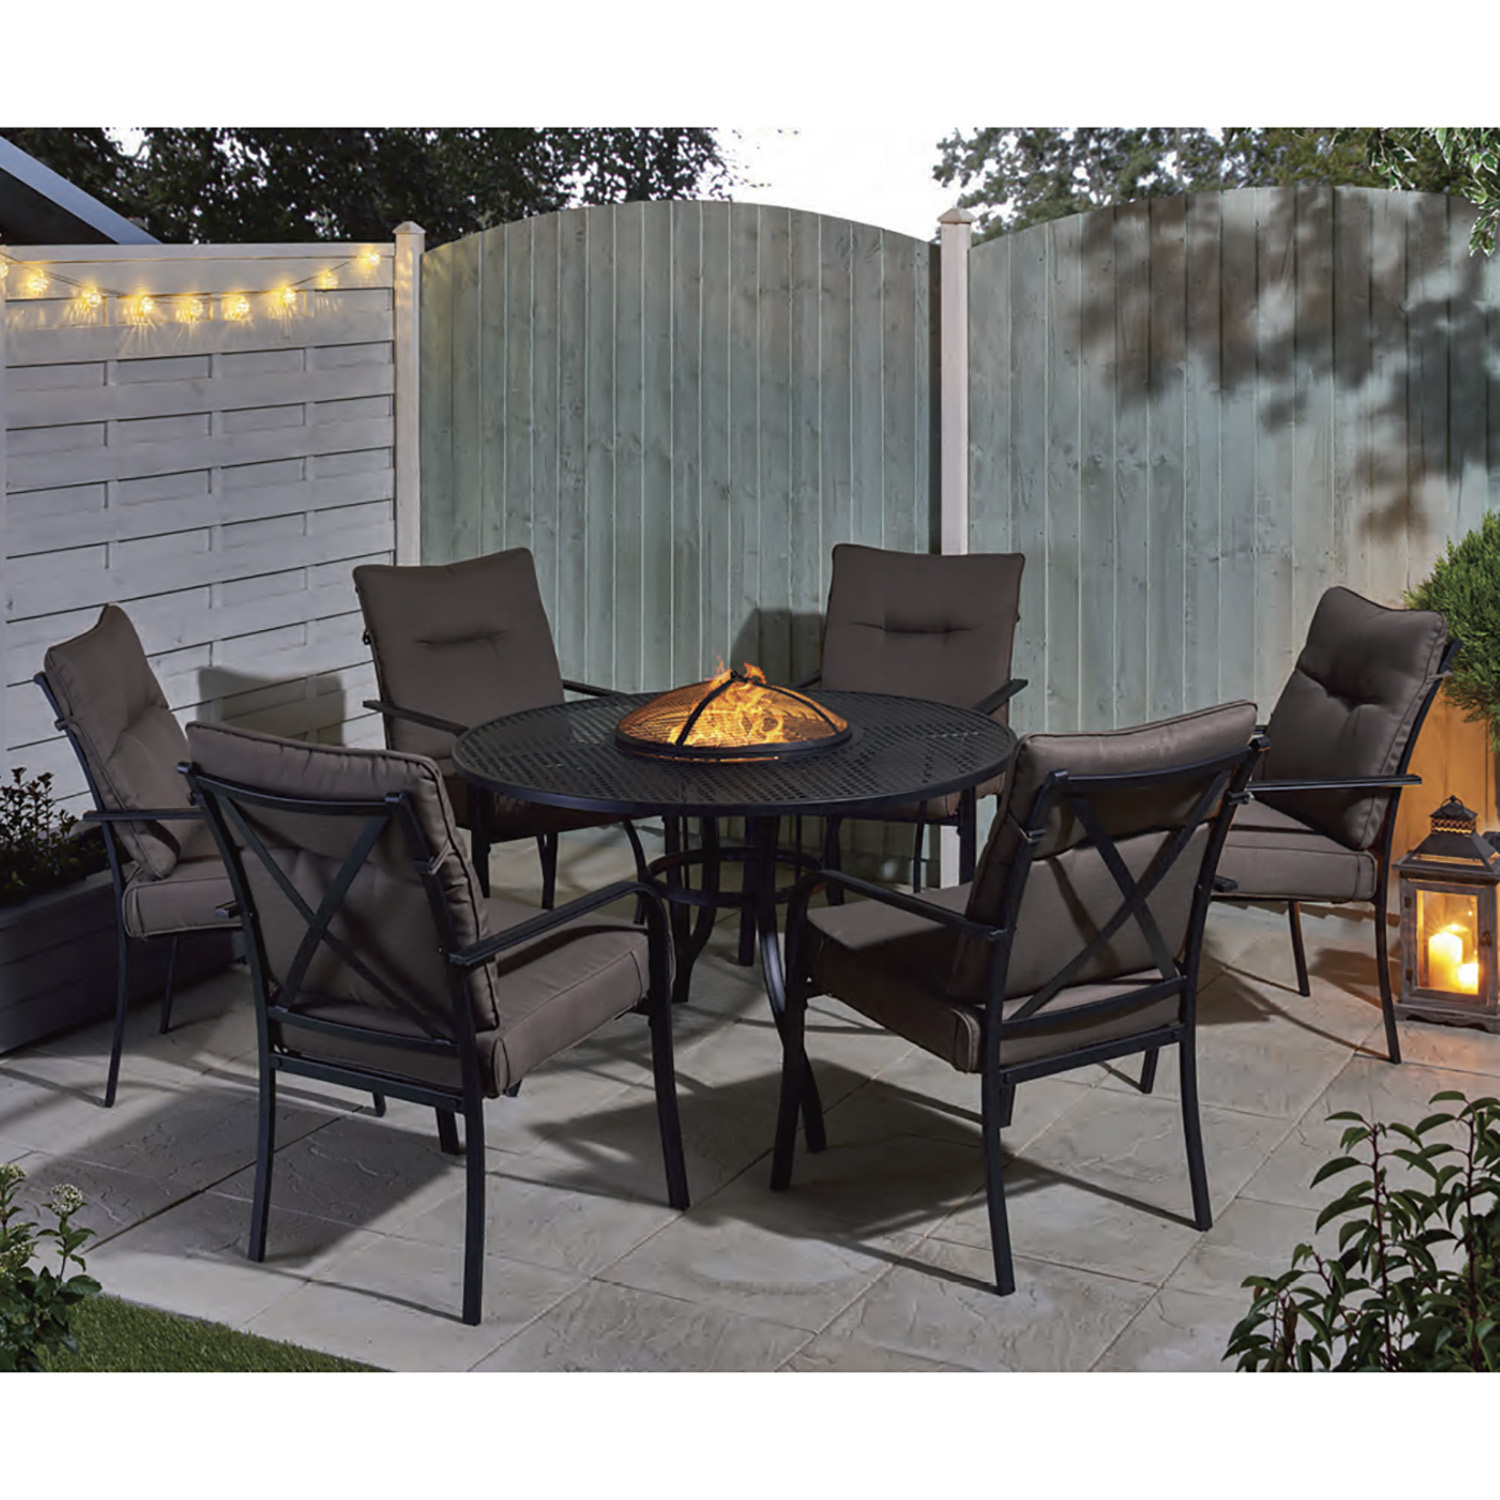 Catalonia Fire Pit And Ice Bucket Dining Set regarding sizing 1500 X 1500